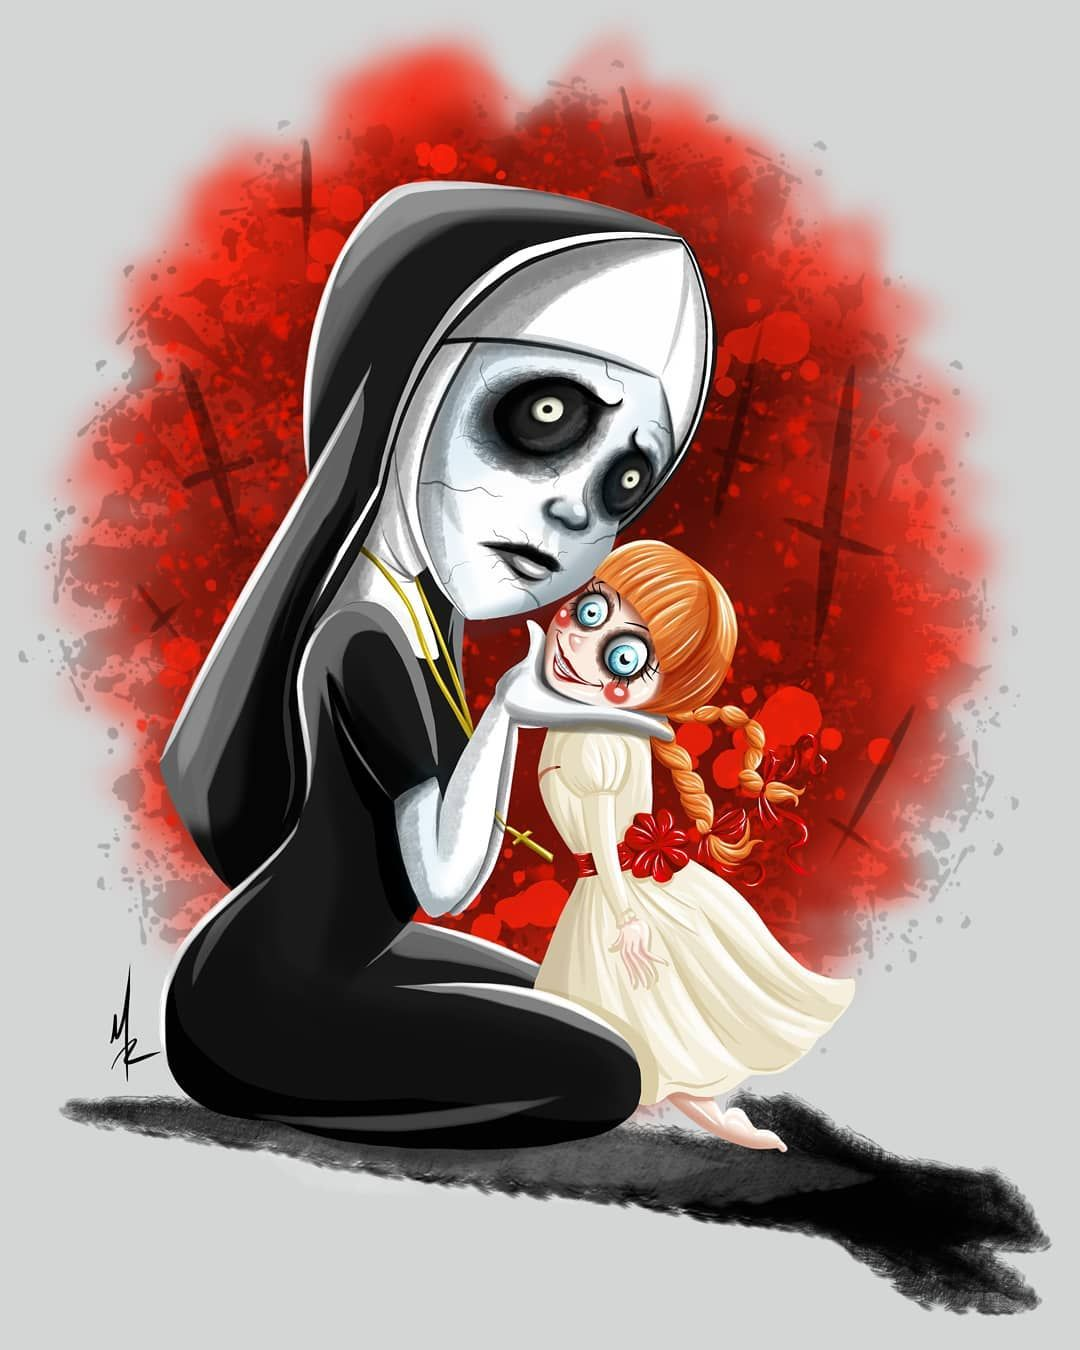 So Here S My Horror Nun With Her Friend Annabelle Let Me Know What You Think Scary Hallo Horror Cartoon Horror Characters Horror Movie Art